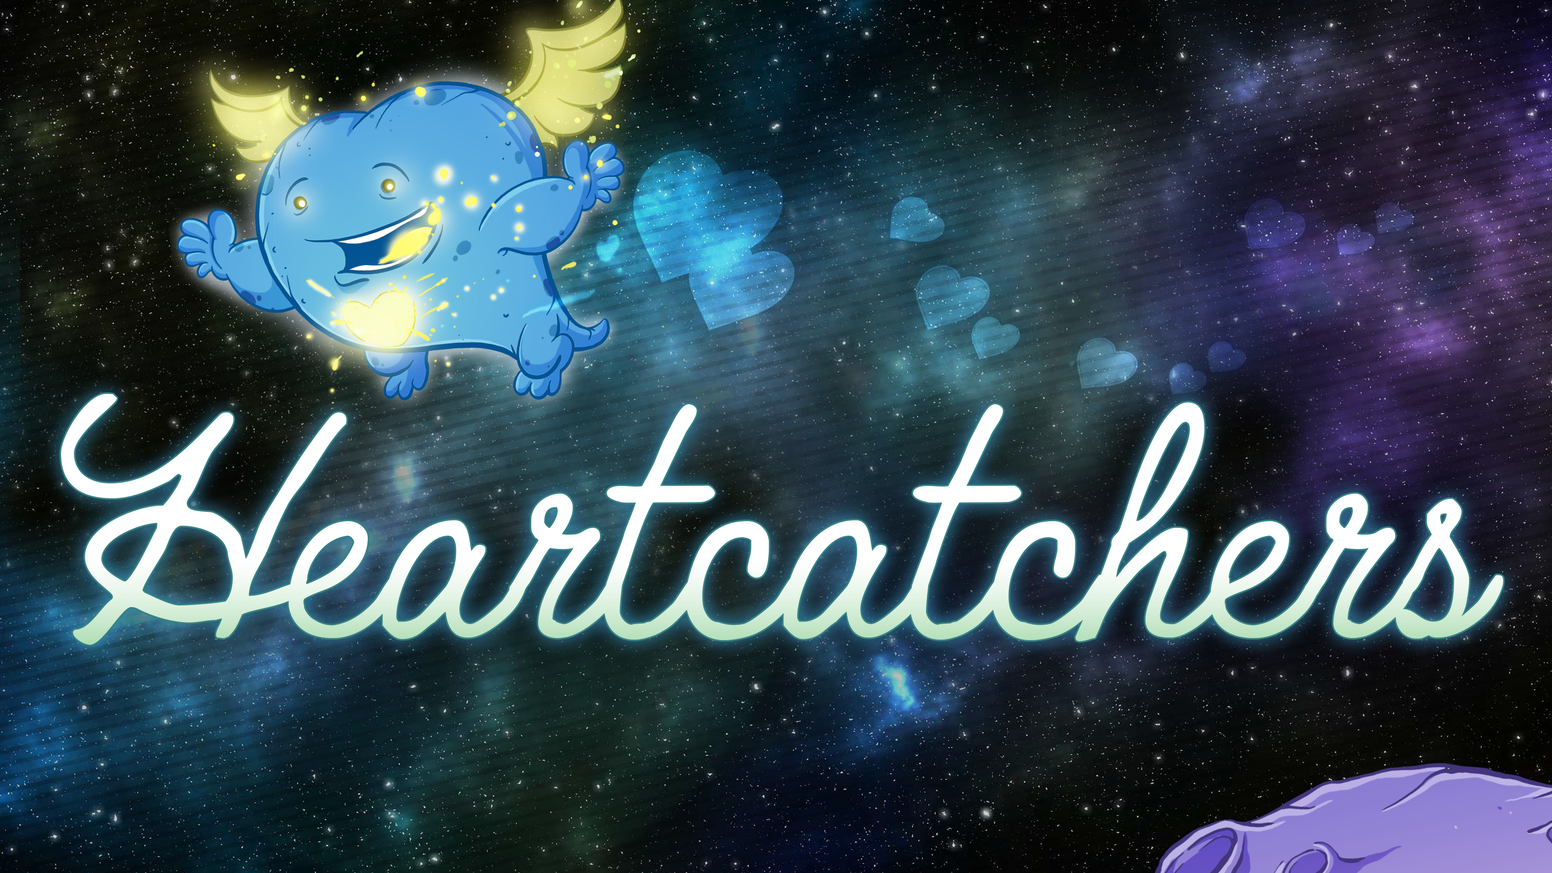 Heartcatchers is an adorable two-player game of deception and secrets.